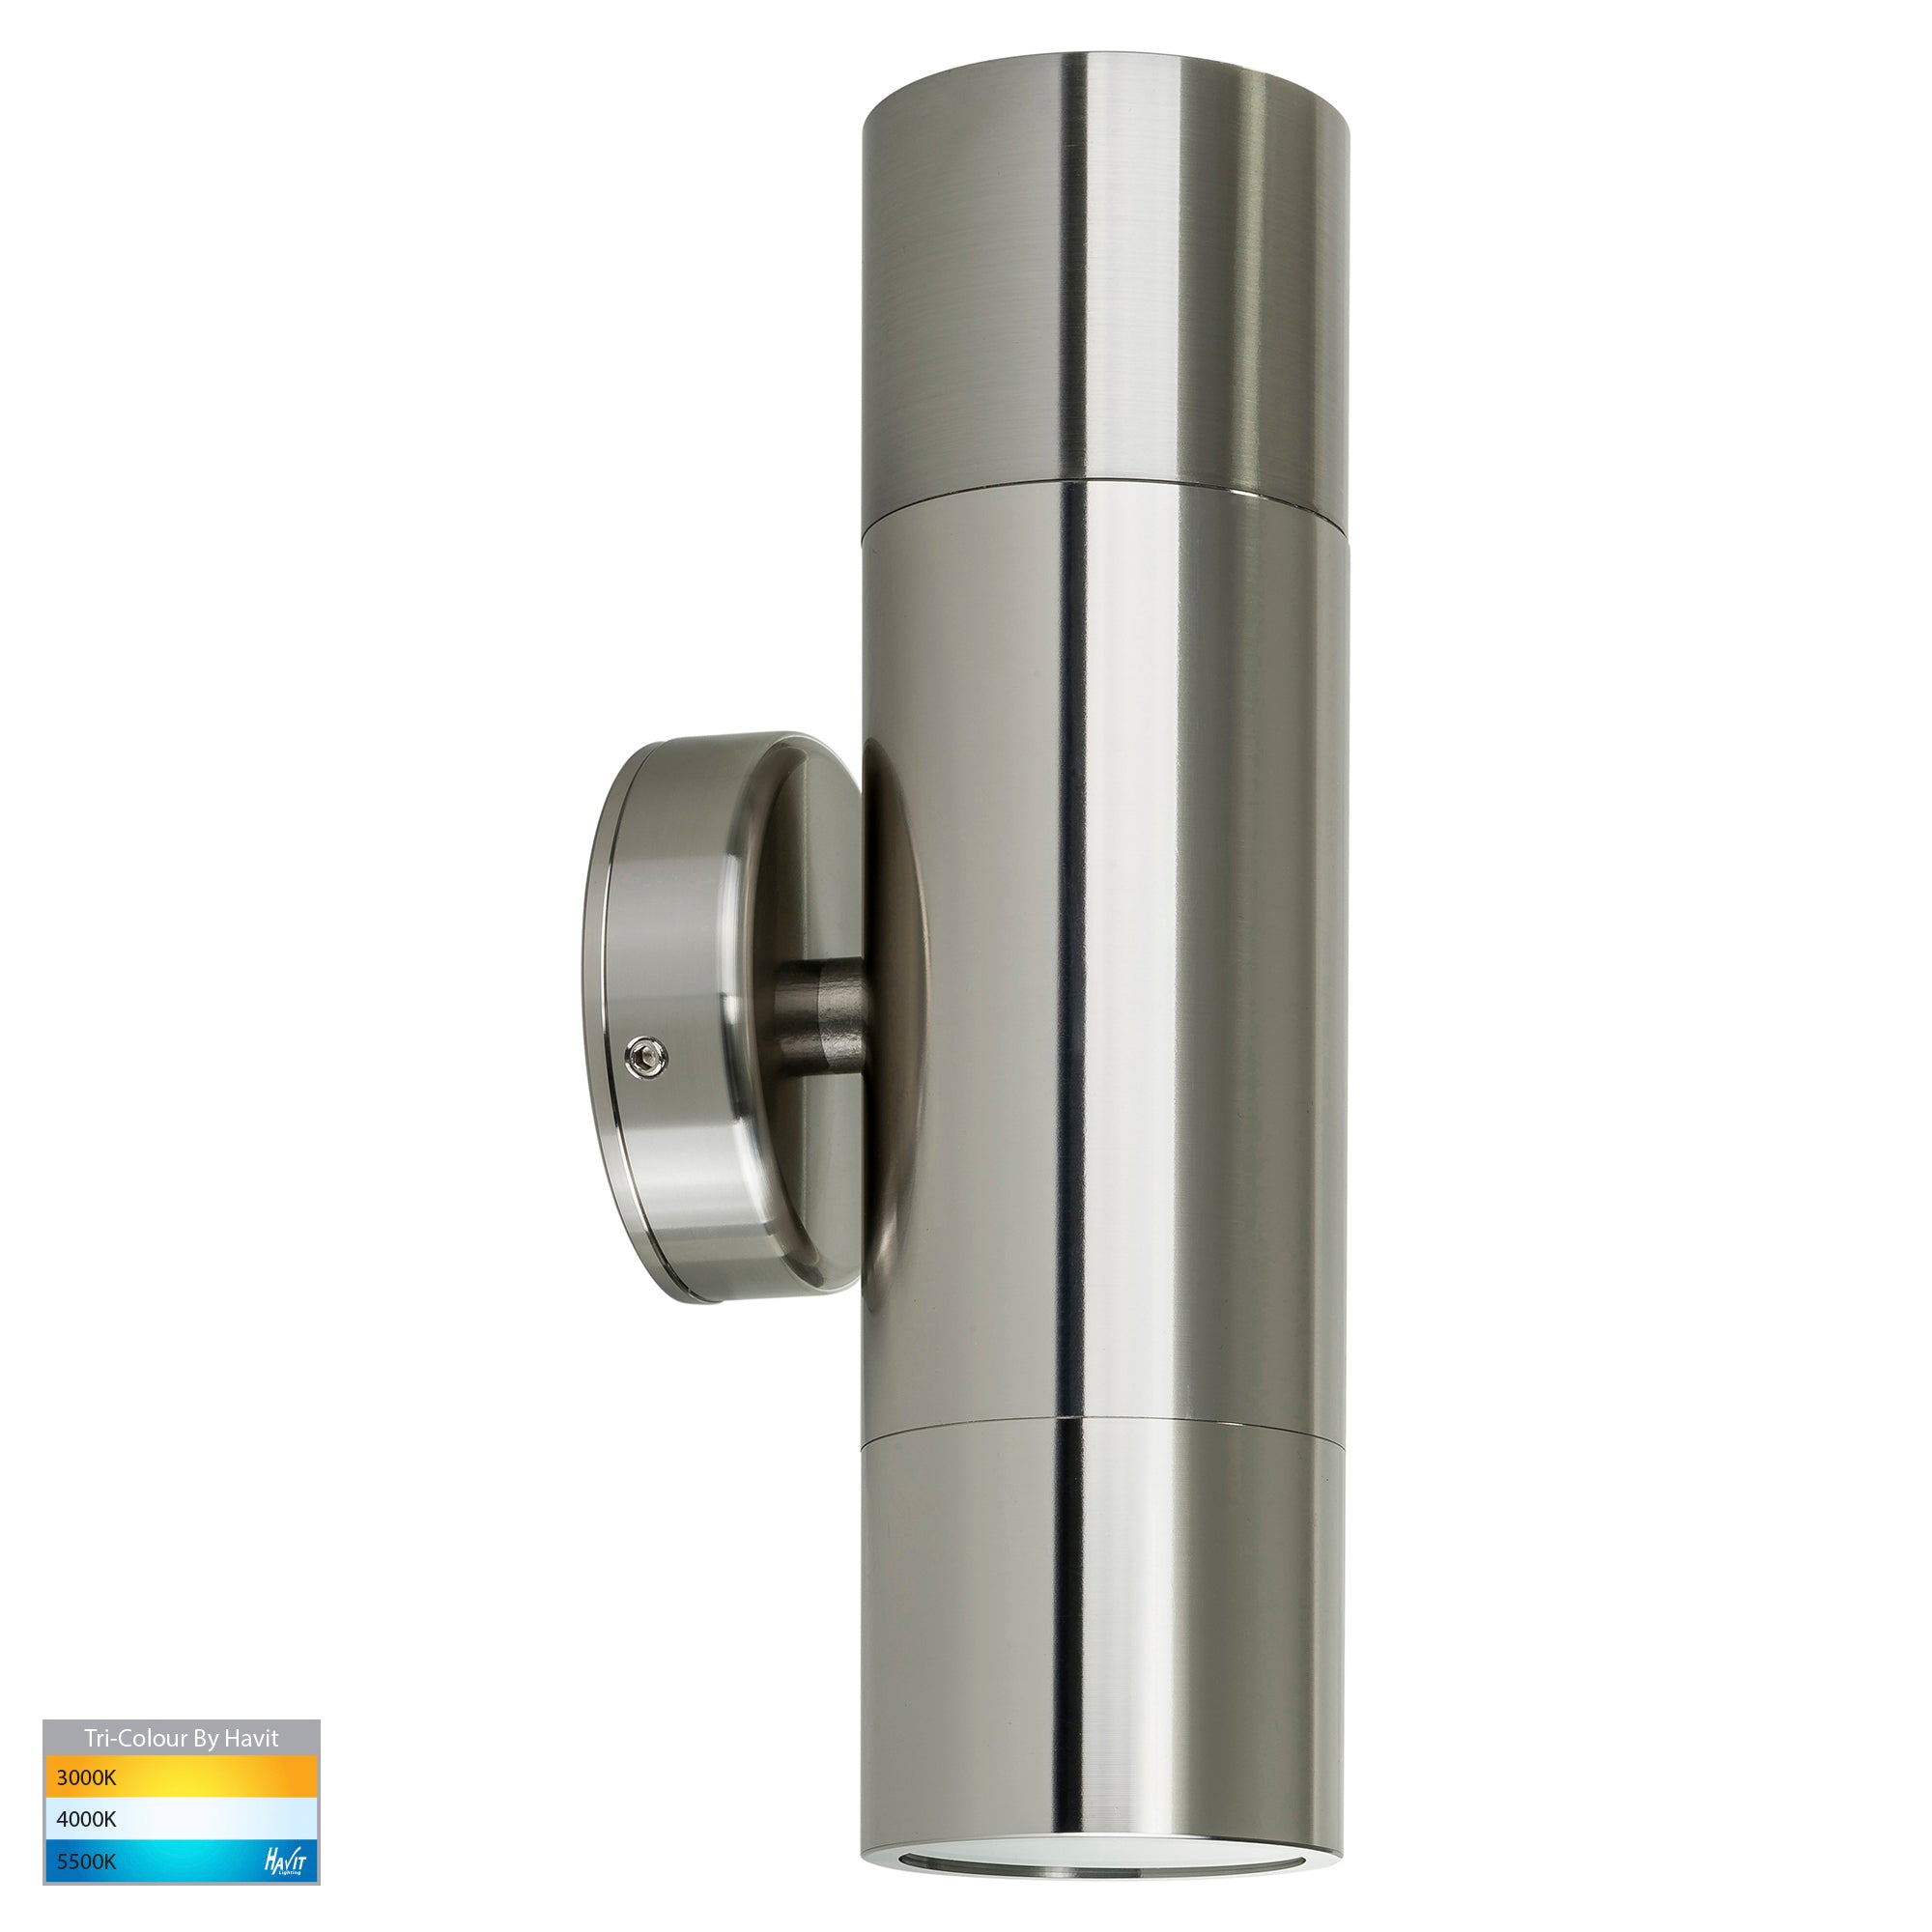 Havit 316 Stainless Steel Up & Down Light